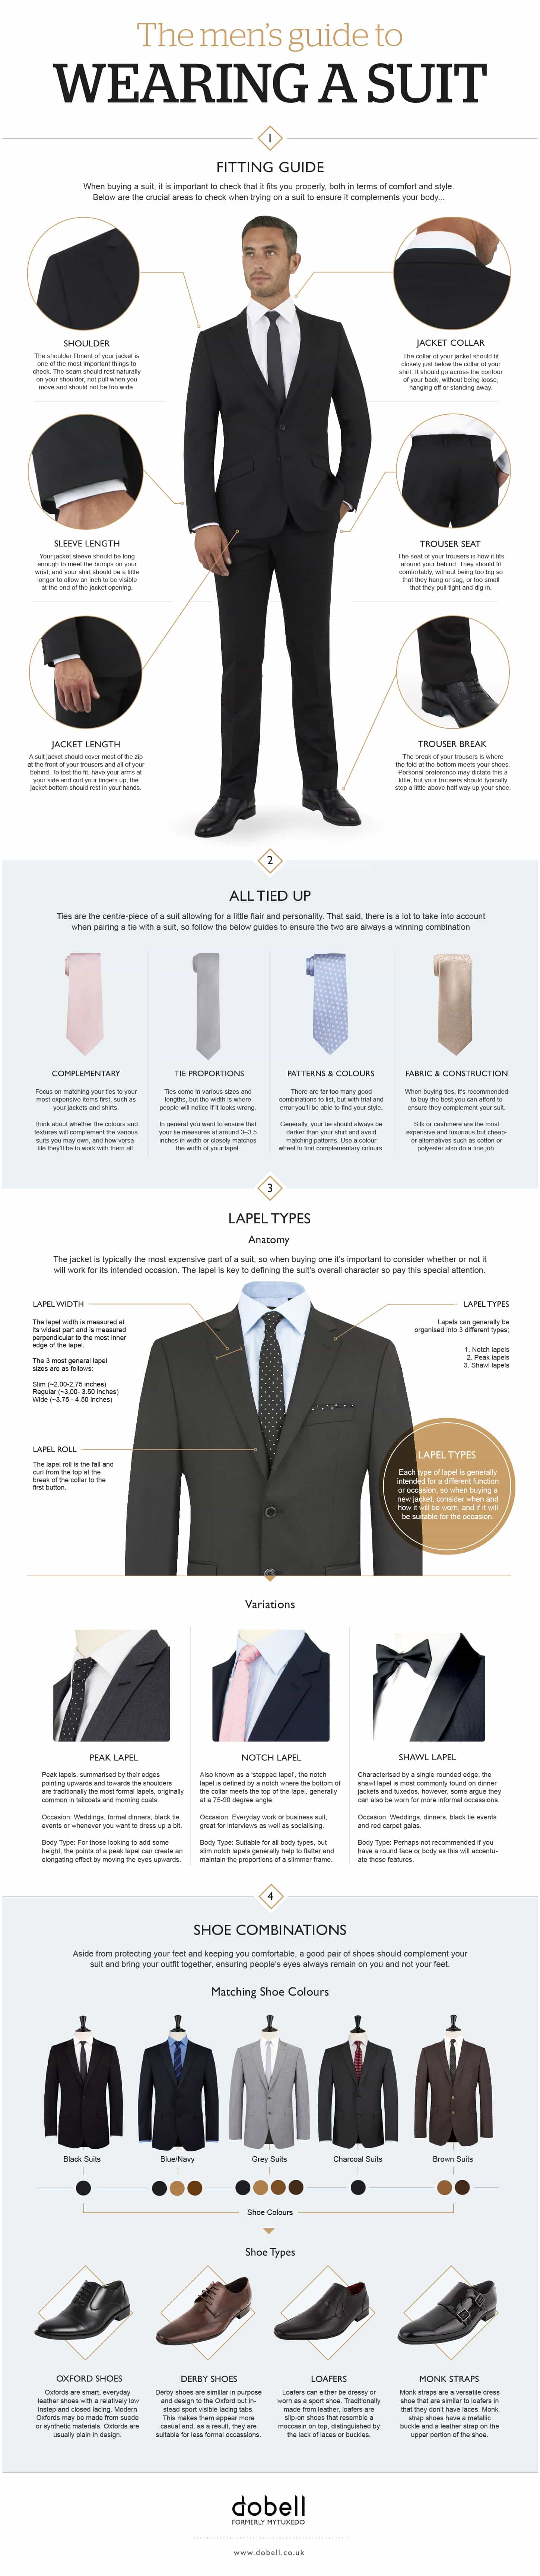 gude to wearing a suit, how to look good in a suit, how you should wear a suit, infographic